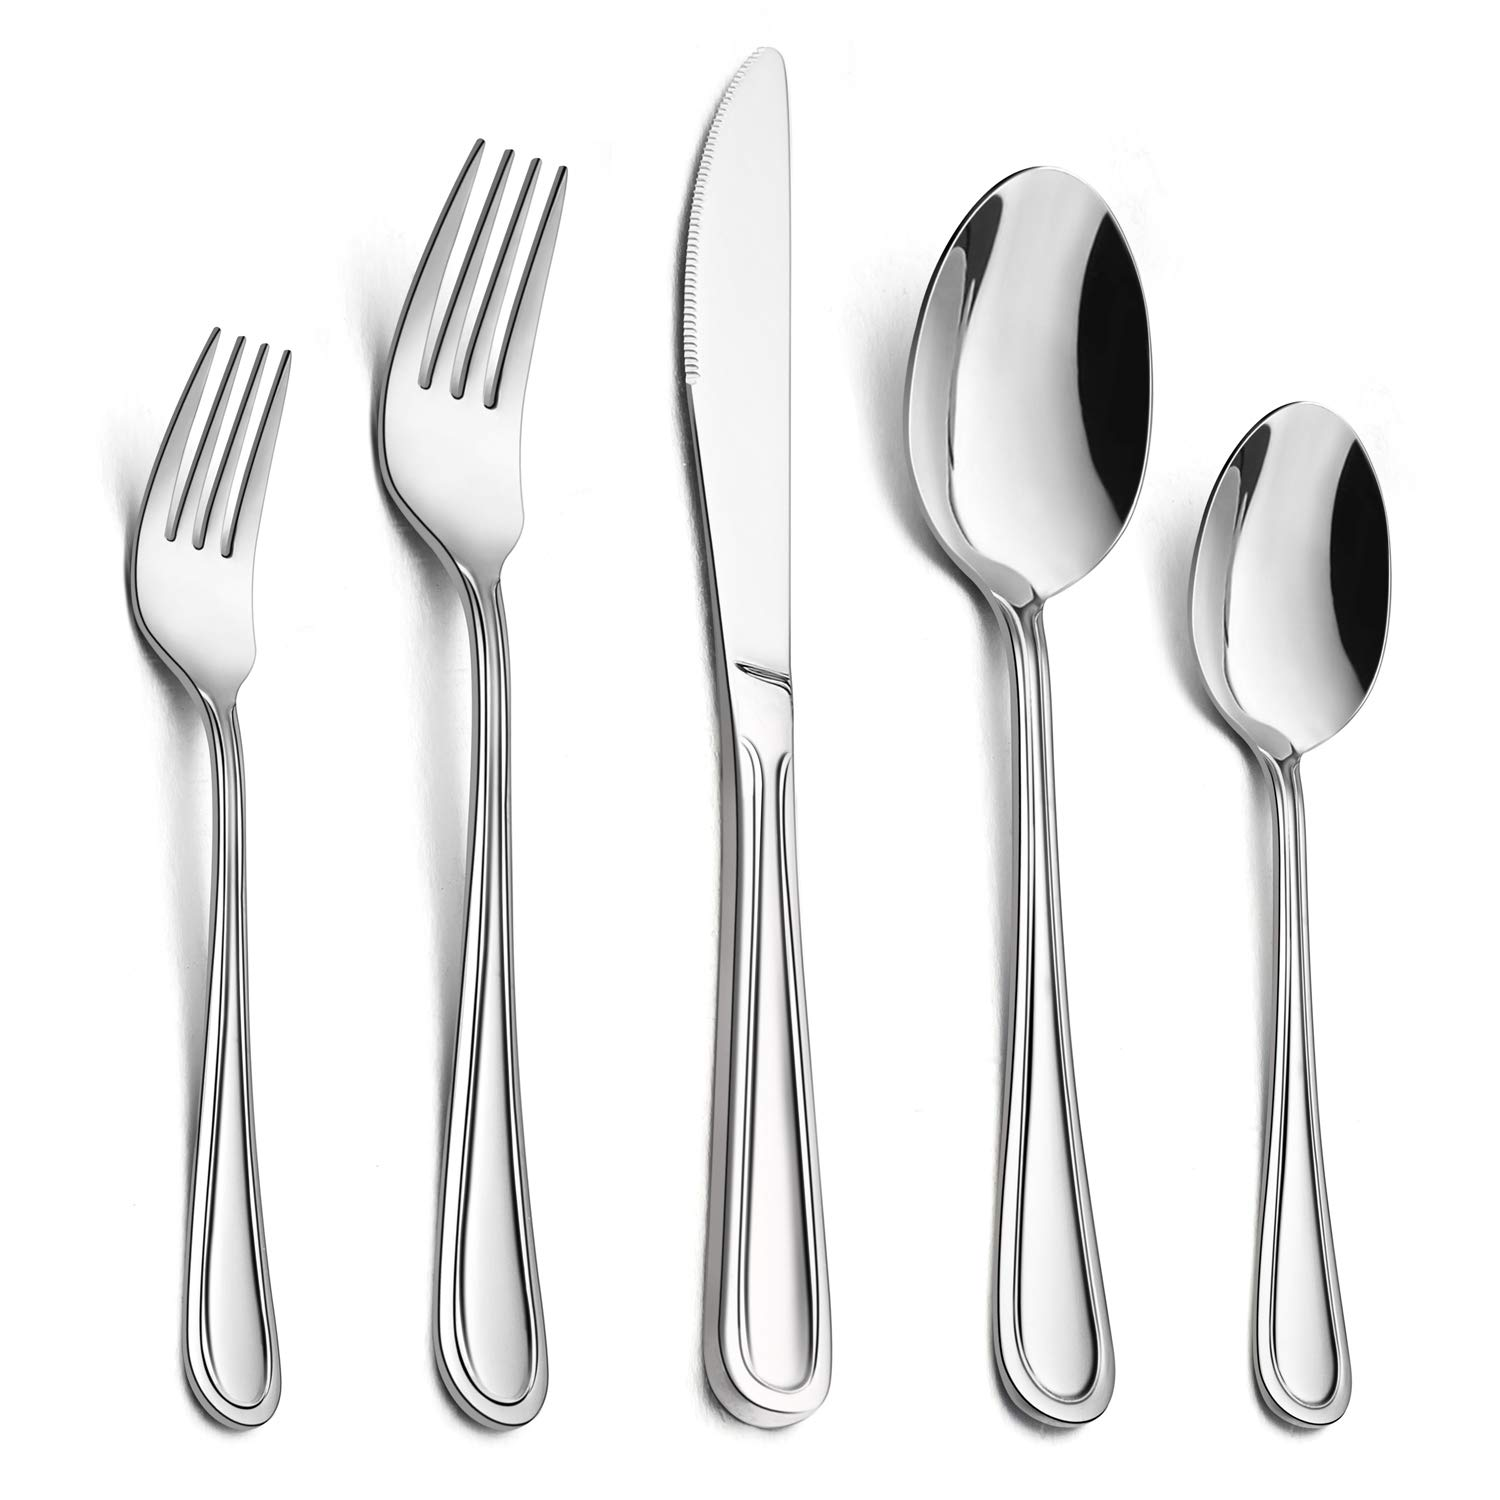 60-Piece Silverware Set, HaWare Stainless Steel Flatware Cutlery Set, For Home/Hotel/Restaurant, Service for 12, Modern Elegant Design, Mirror Polished, Dishwasher Safe by HaWare